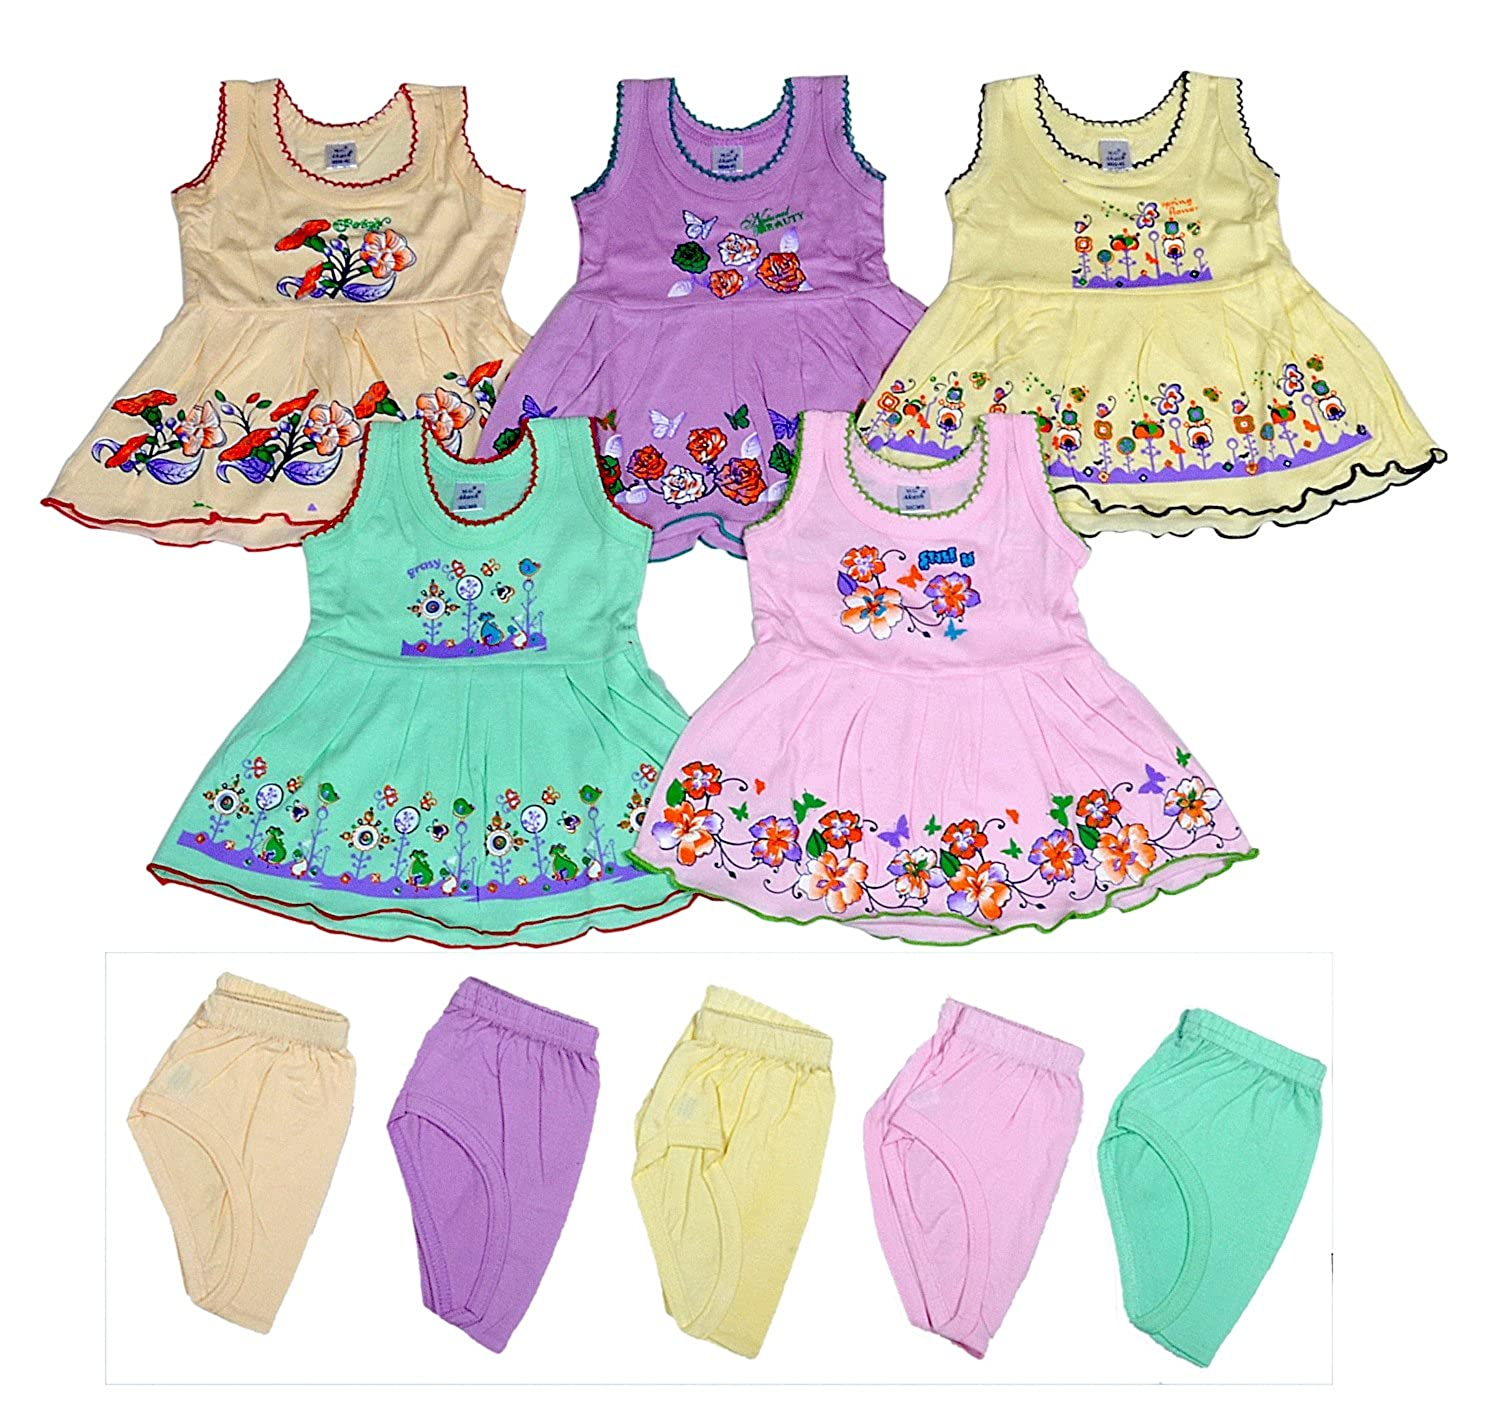 Sathiyas Baby Girls A Line Hosiery Cotton Dresses Multicolor Set